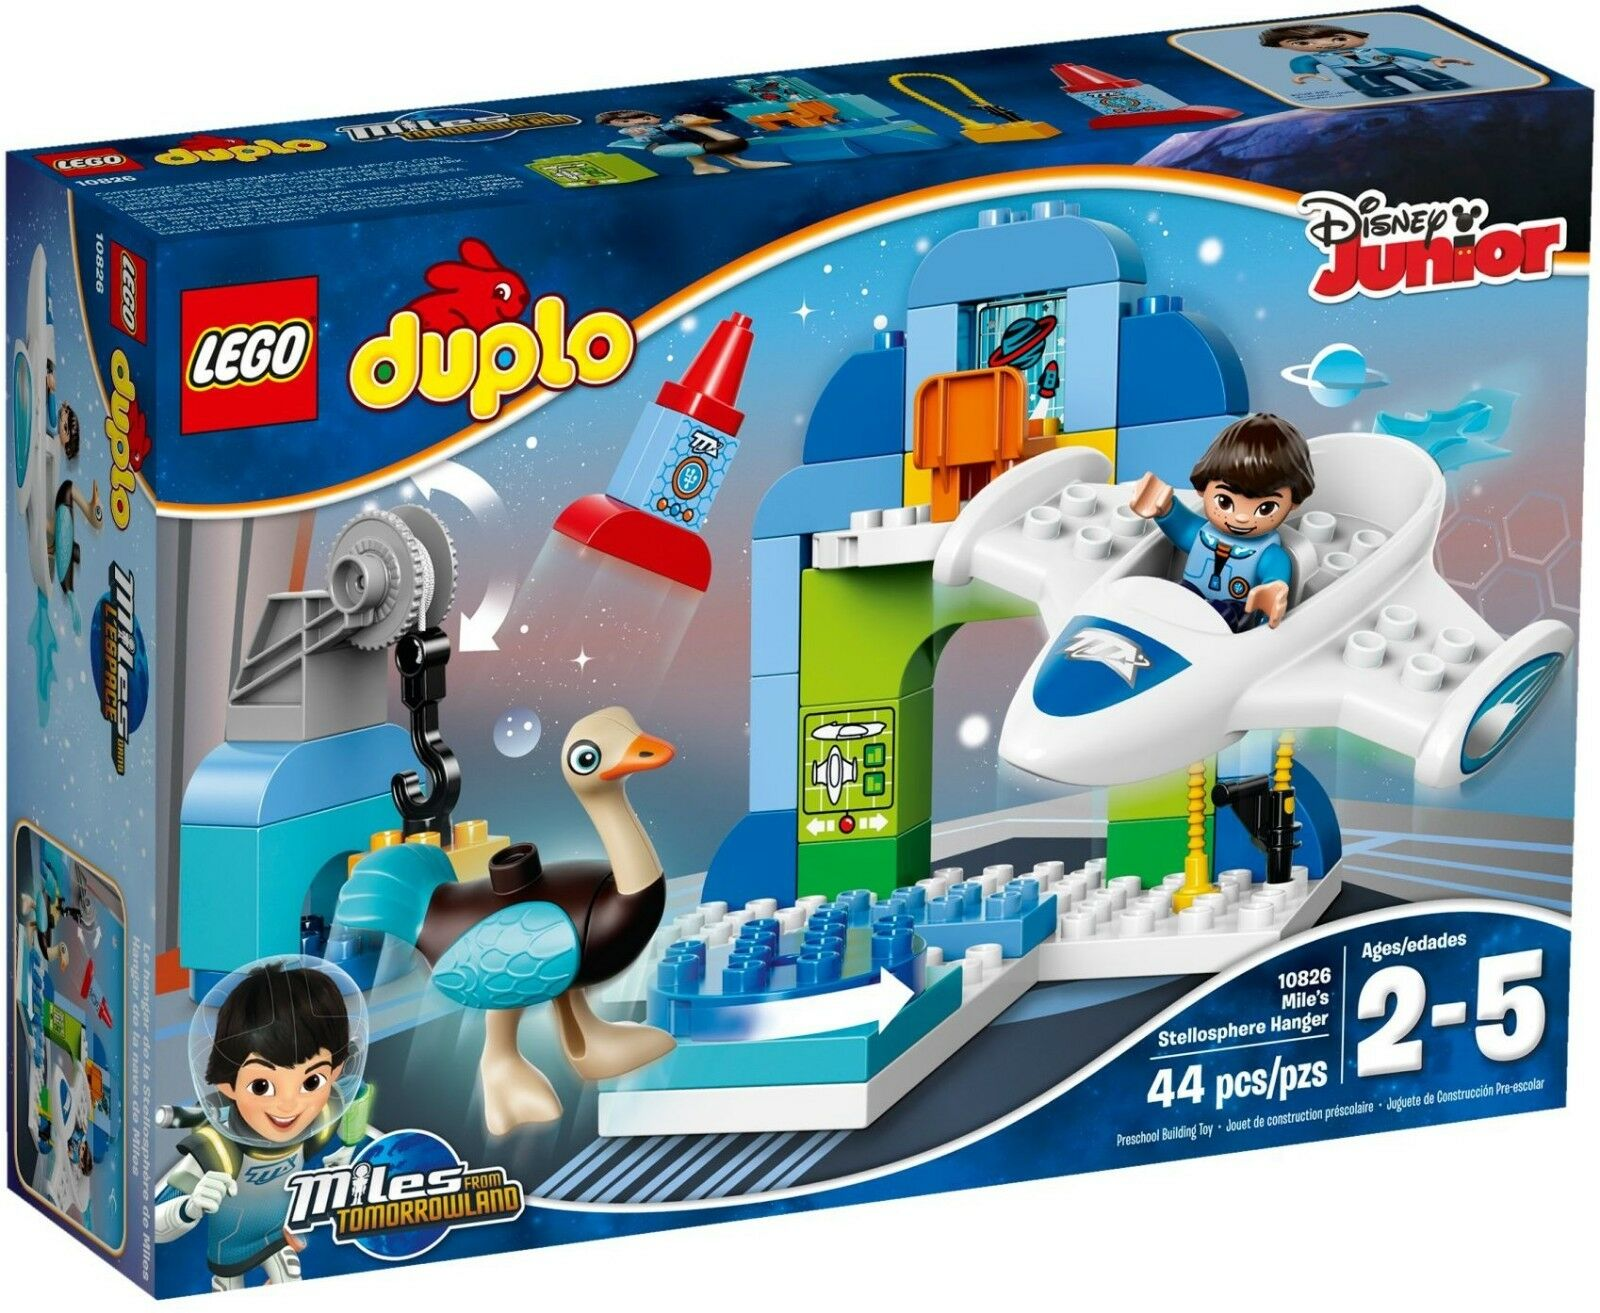 Lego Duplo BNIB 10826 Mile Stellosphere Hangar Miles from tomorrowland